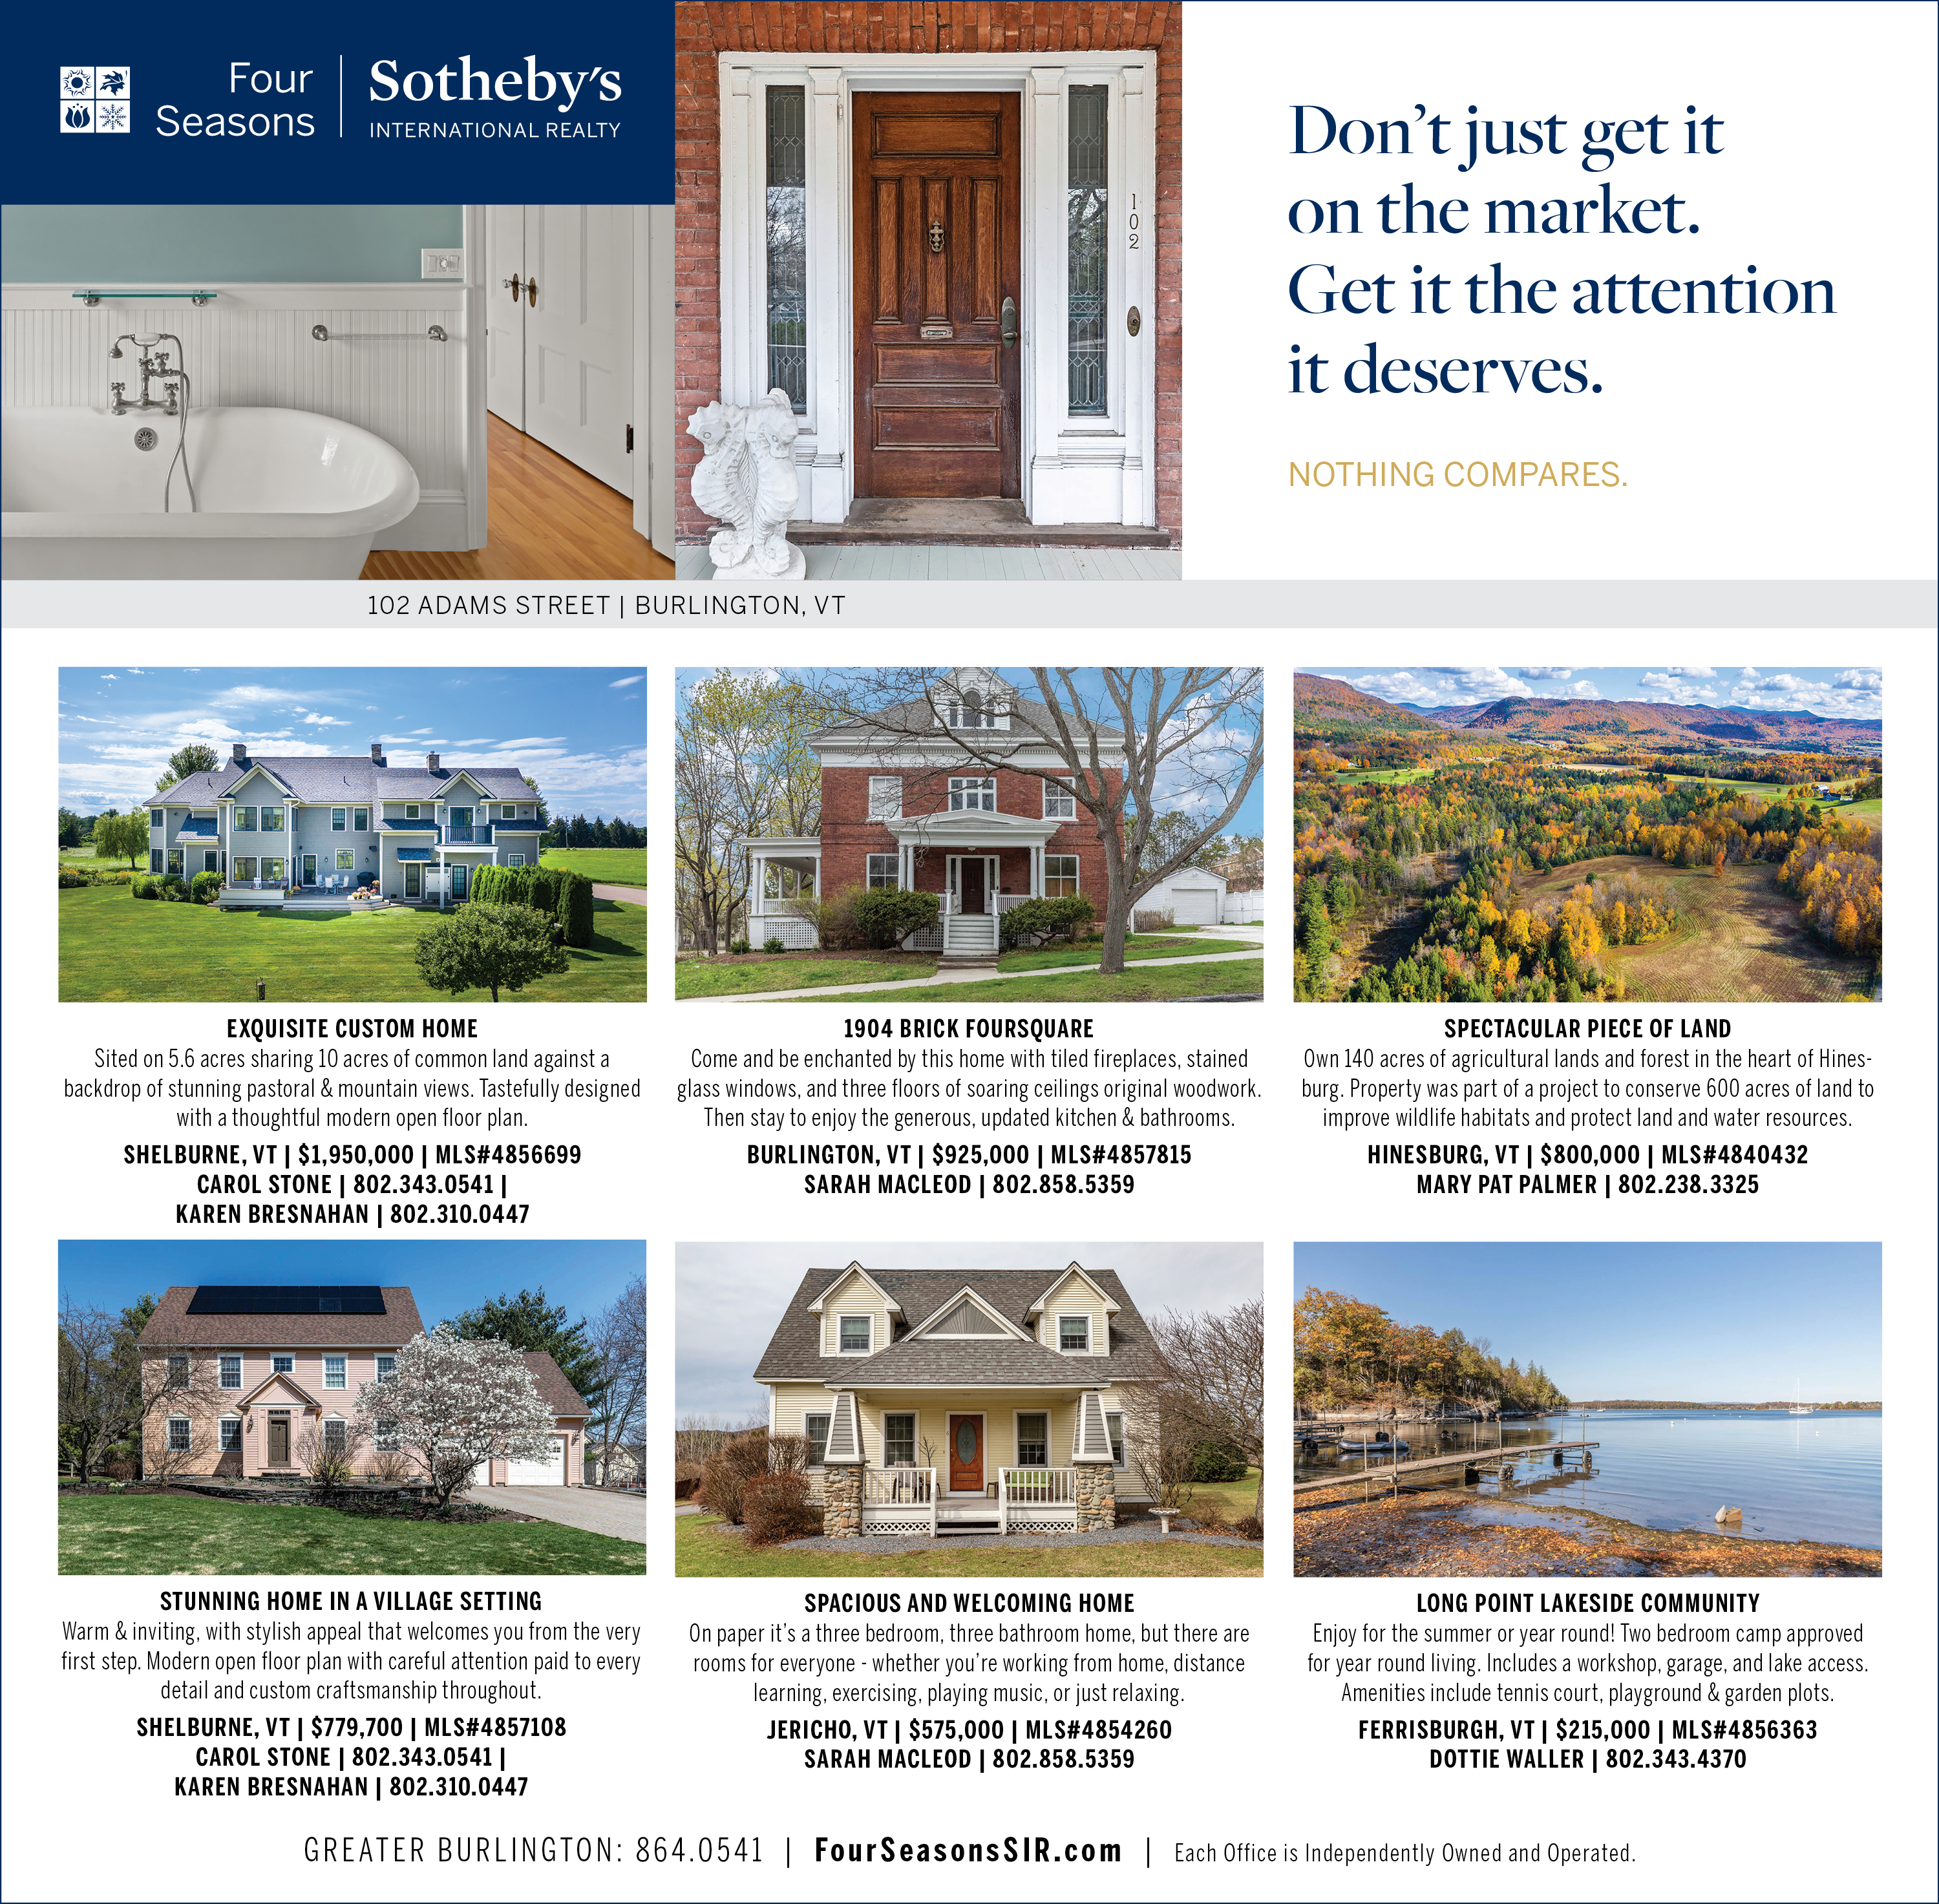 Don't just get it on the market. Get it the attention it deserves.